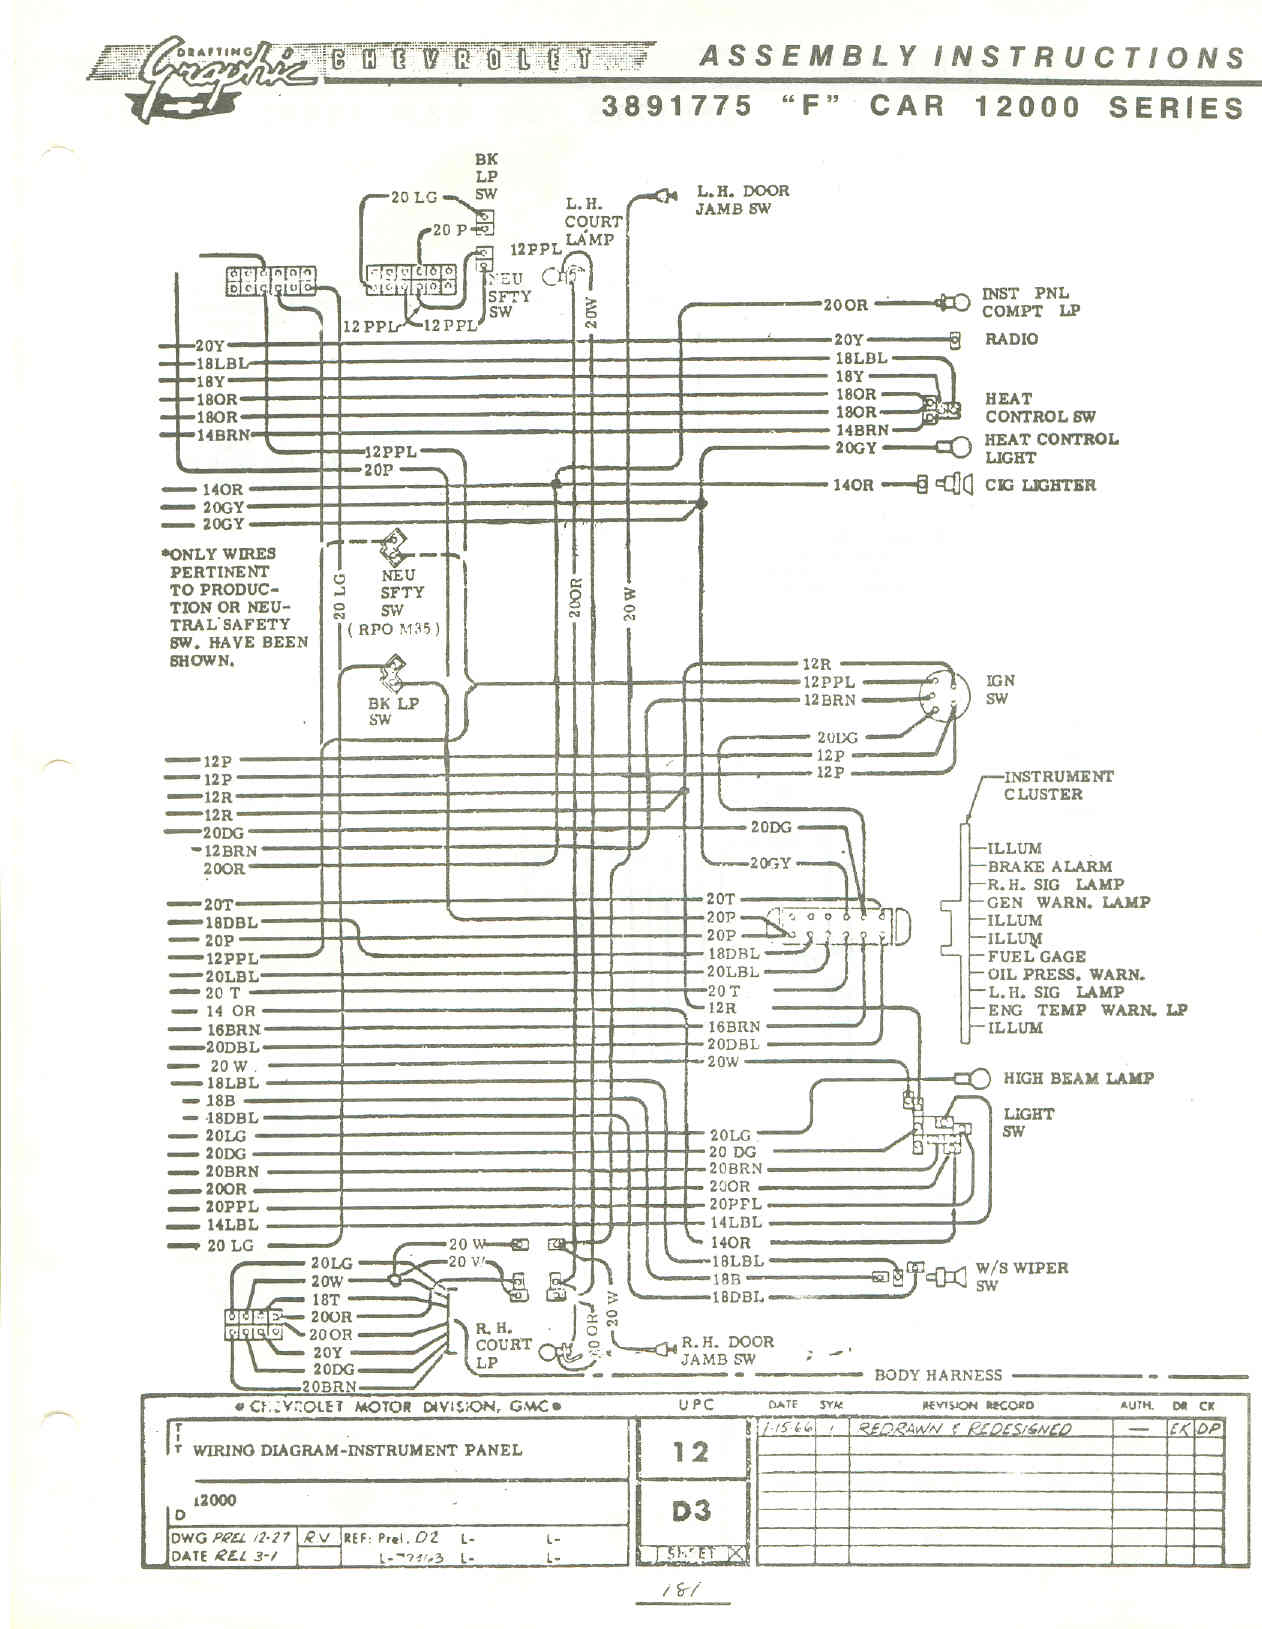 Enchanting 66 Chevelle Wiring Diagram Elaboration - Electrical and ...